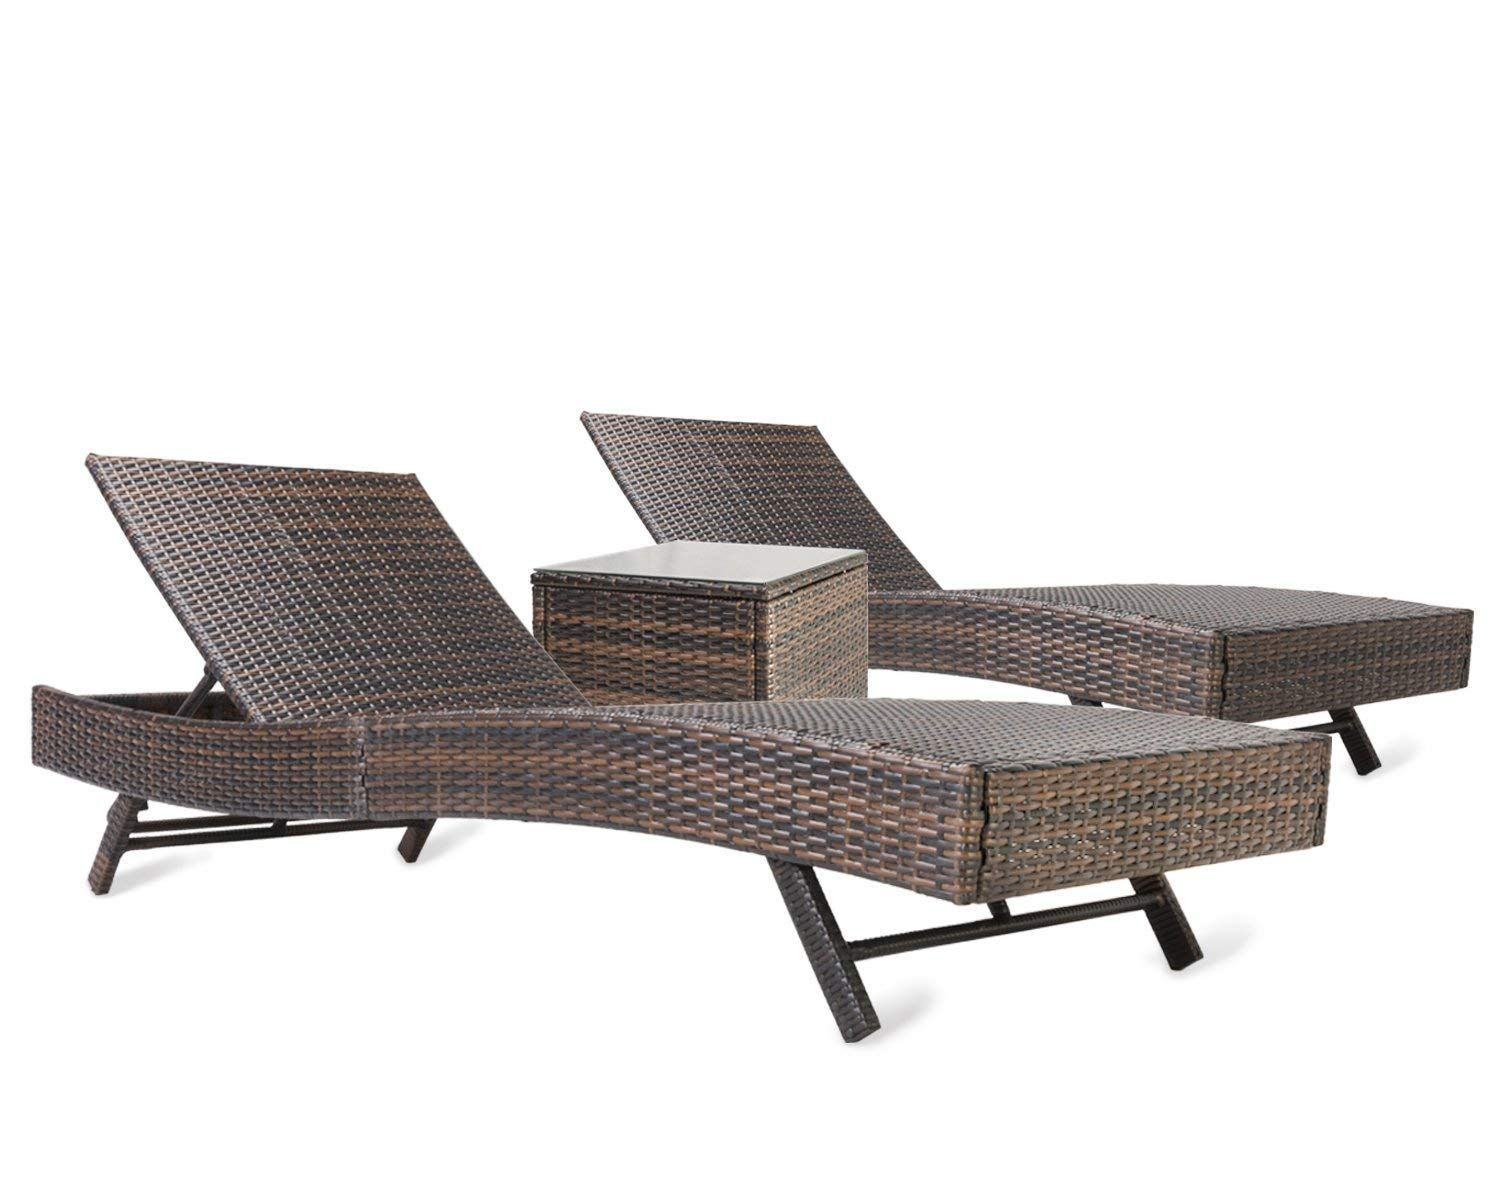 Pamapic 3PCS Outdoor Chaise Lounge Chair Set 【with Cushion Set of 2】, Adjustable Backrest PE Wicker Patio Furniture with Coffee Table (Brown)